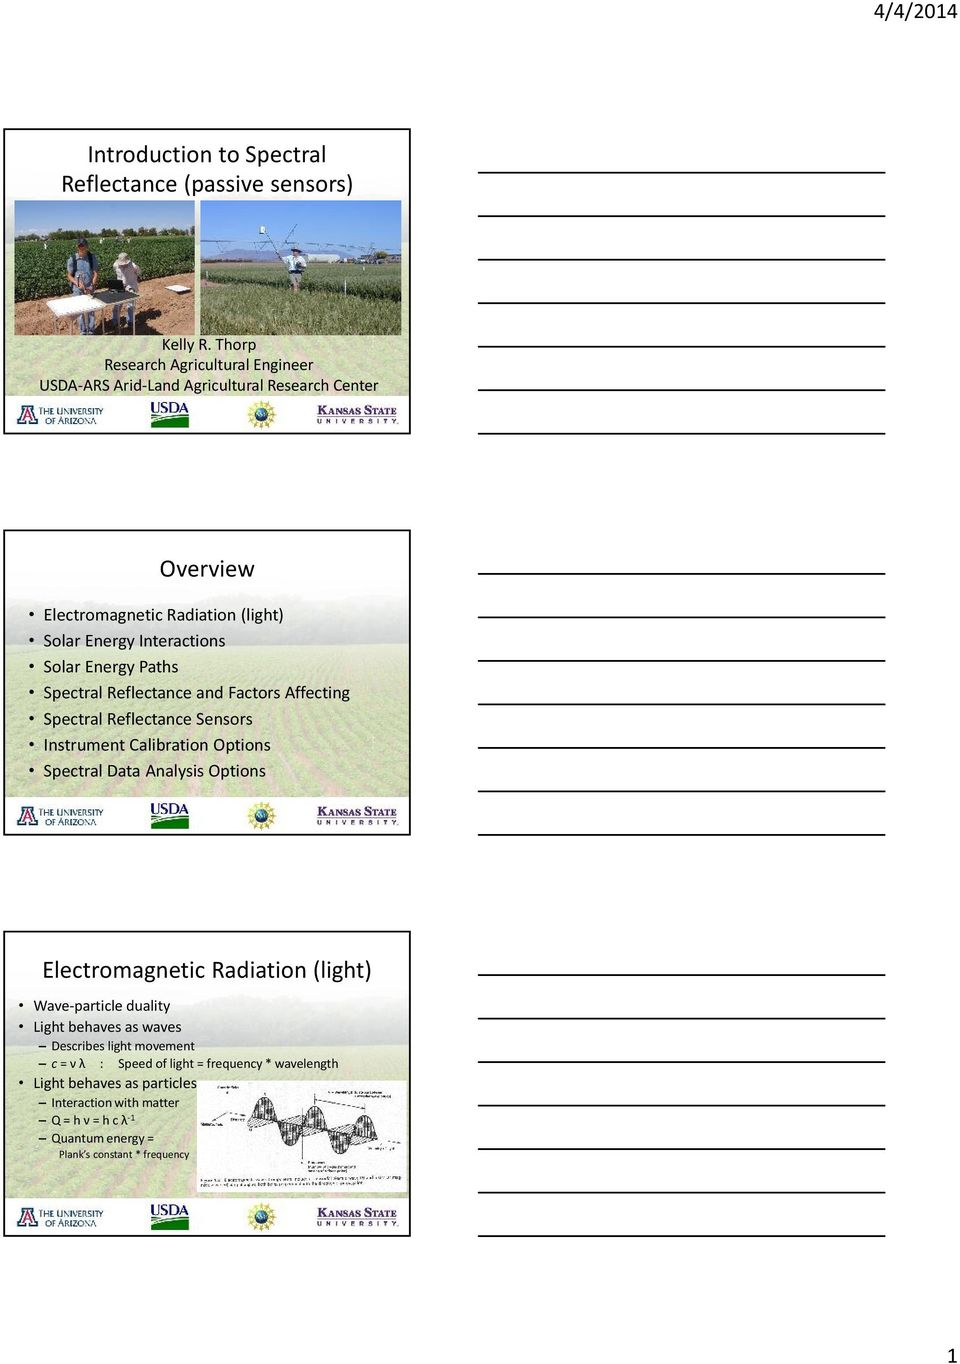 Energy Paths Spectral Reflectance and Factors Affecting Spectral Reflectance Sensors Instrument Calibration Options Spectral Data Analysis Options